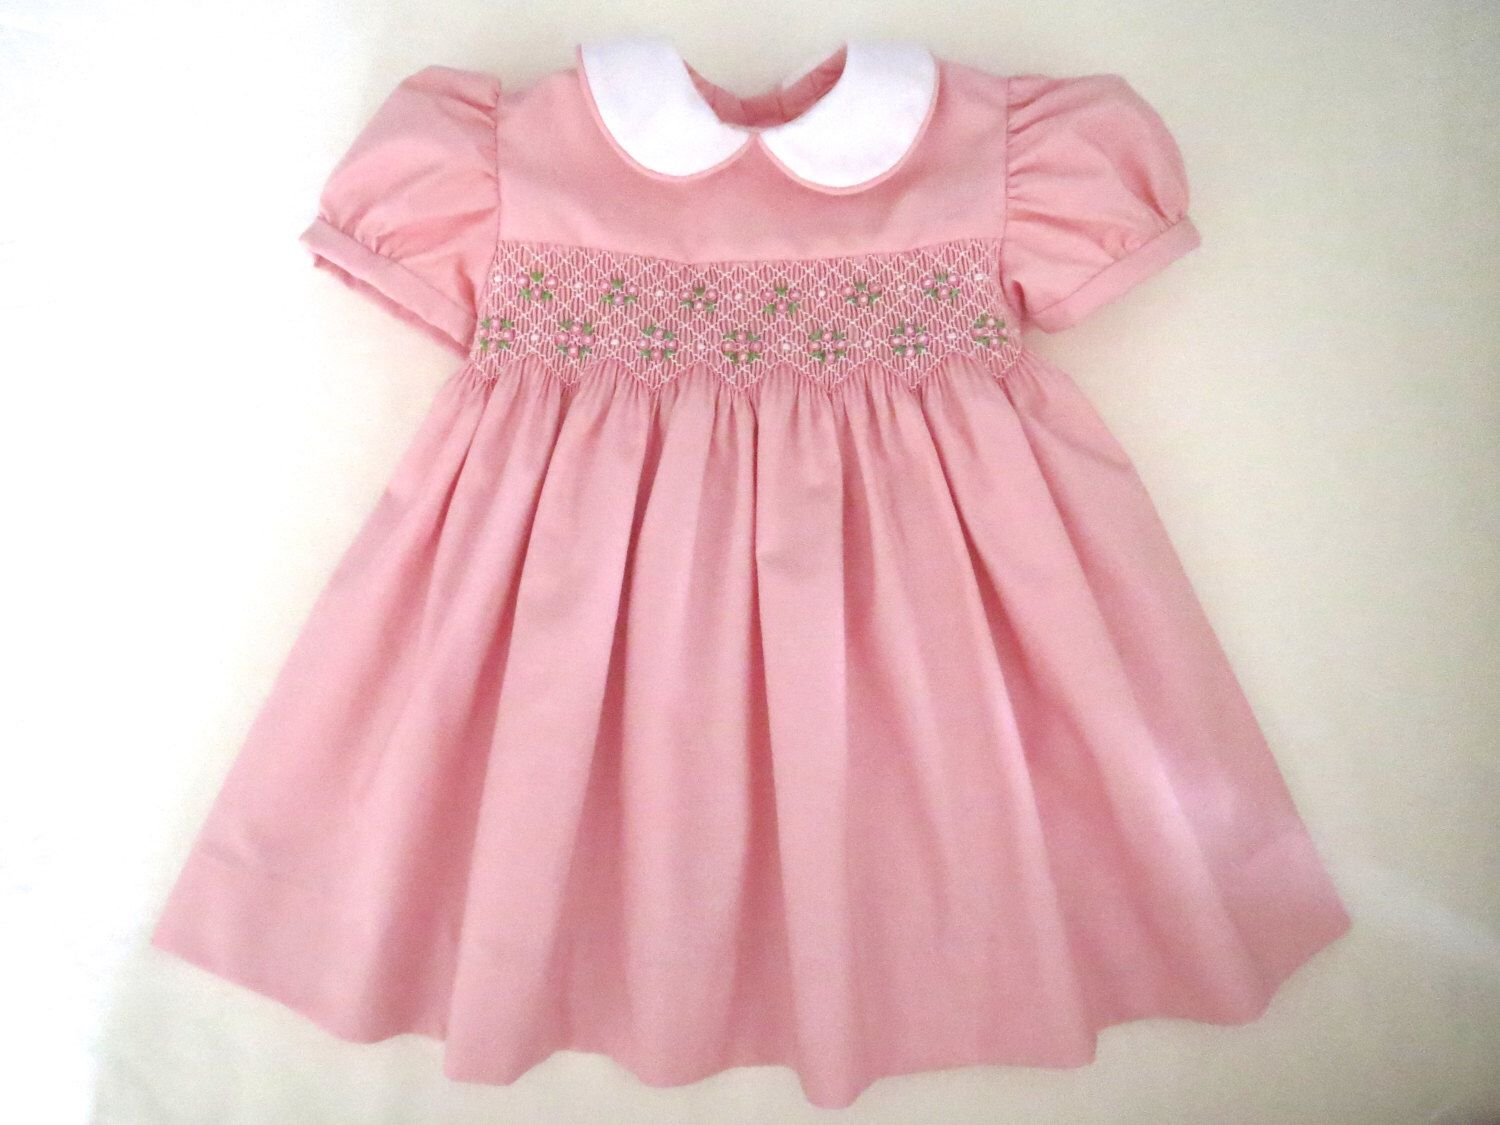 Buy designer baby and kids clothes for girls & boys. Shop timeless, smocked & monogrammed children's clothes for infants & toddlers at Smocked Auctions.